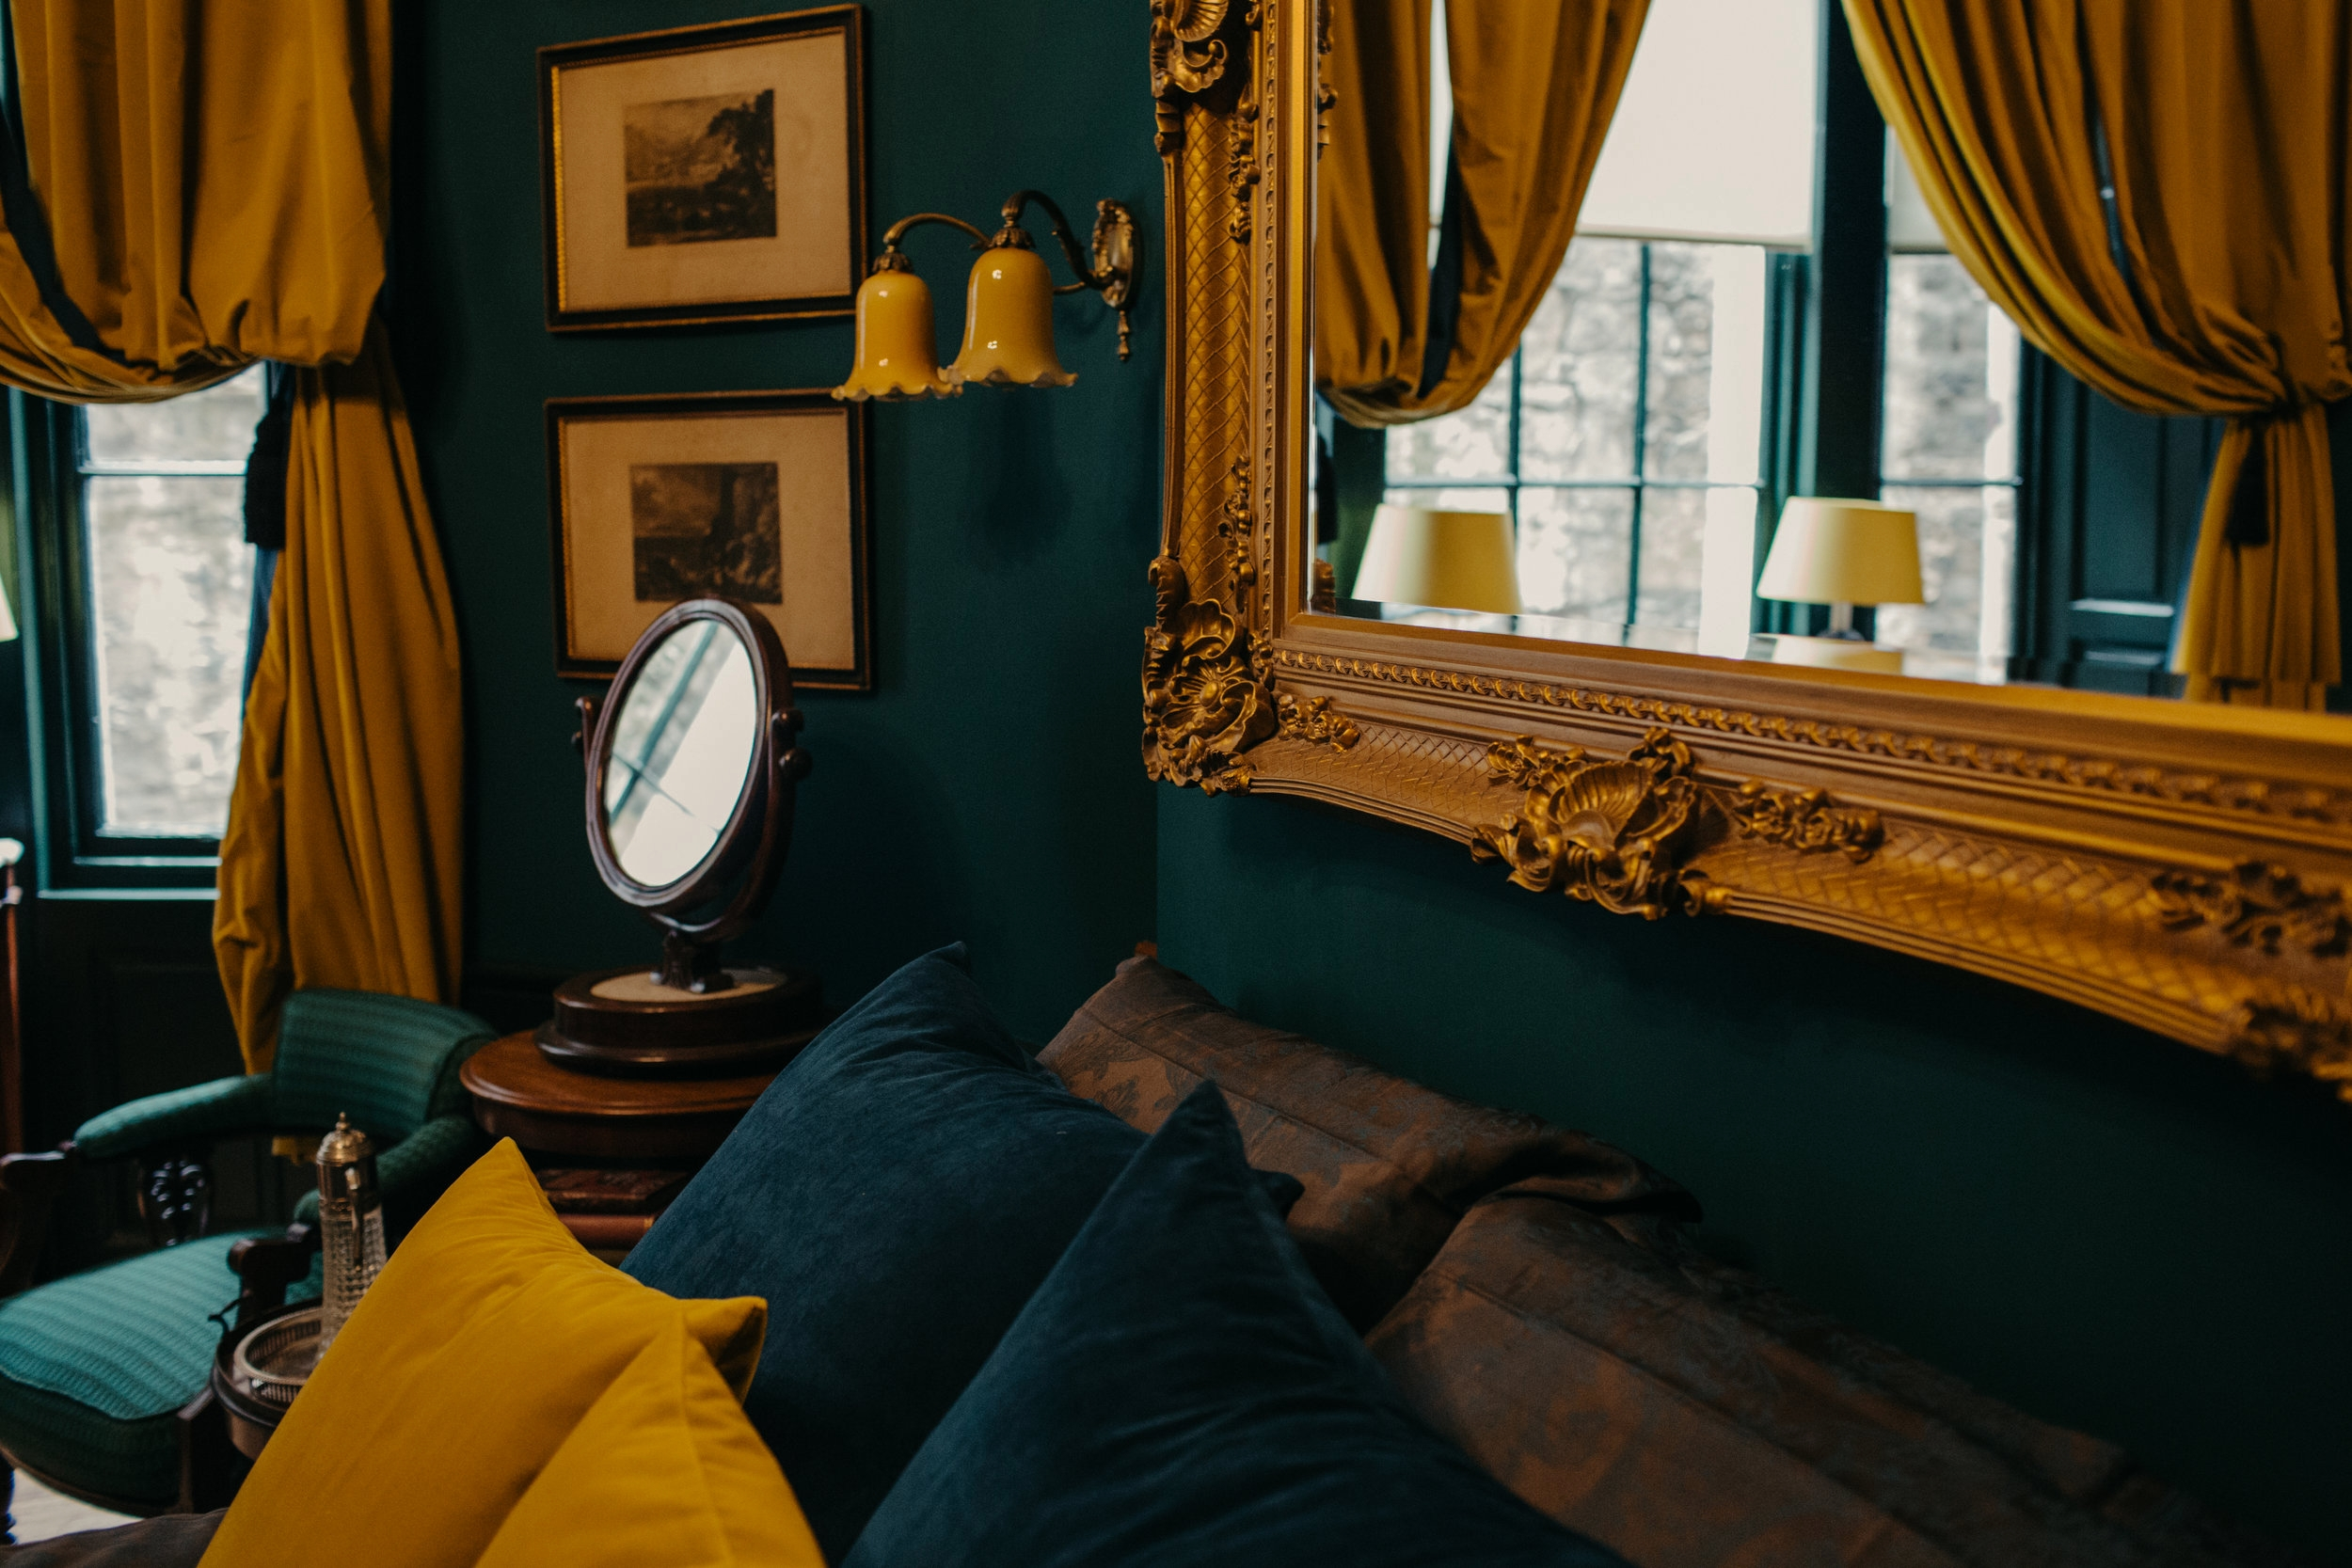 The Chaumer Abide - Our decadent guest suite in the heart of EdinburghContact us for July's discounts!